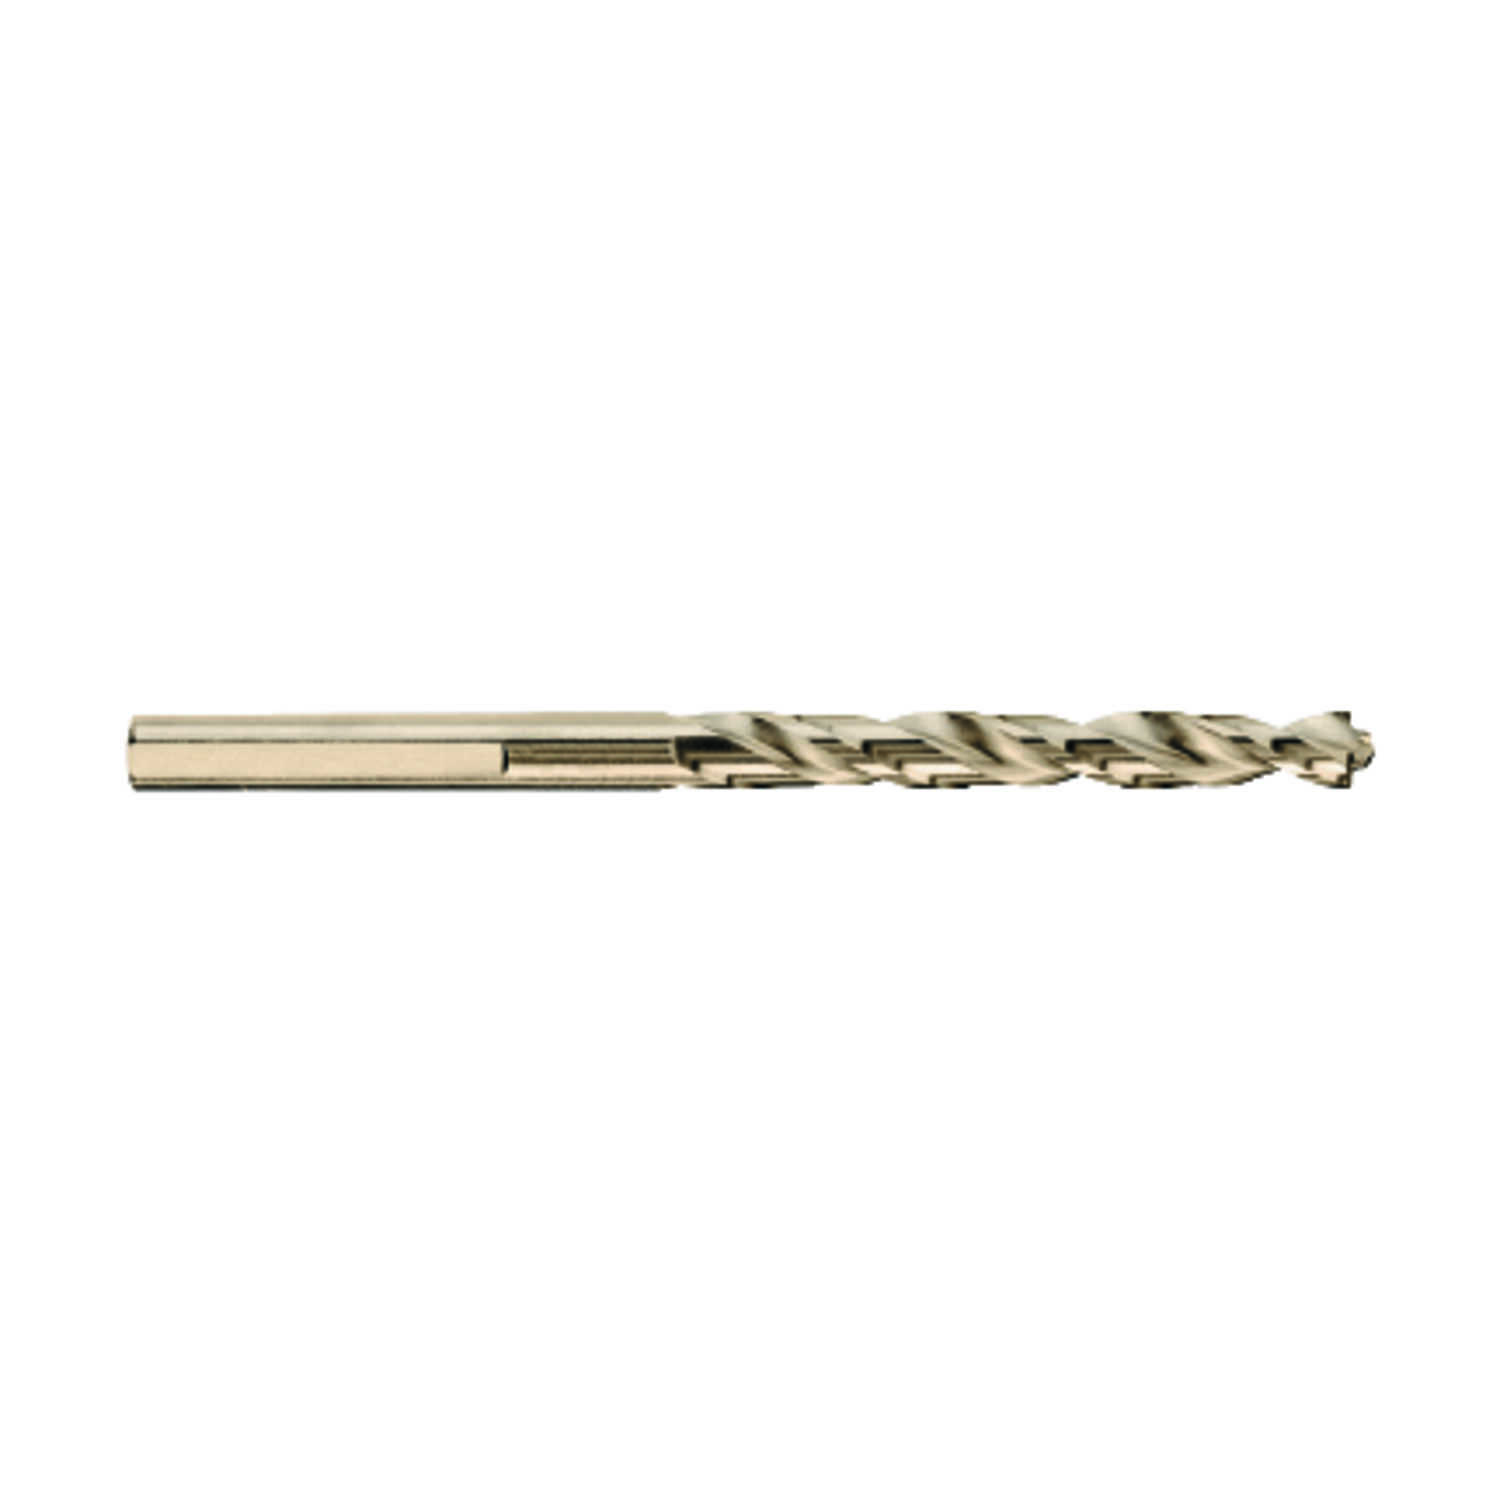 DeWalt  Pilot Point  9/64 in. Dia. x 2-7/8 in. L High Speed Steel  Split Point Drill Bit  3-Flat Sha